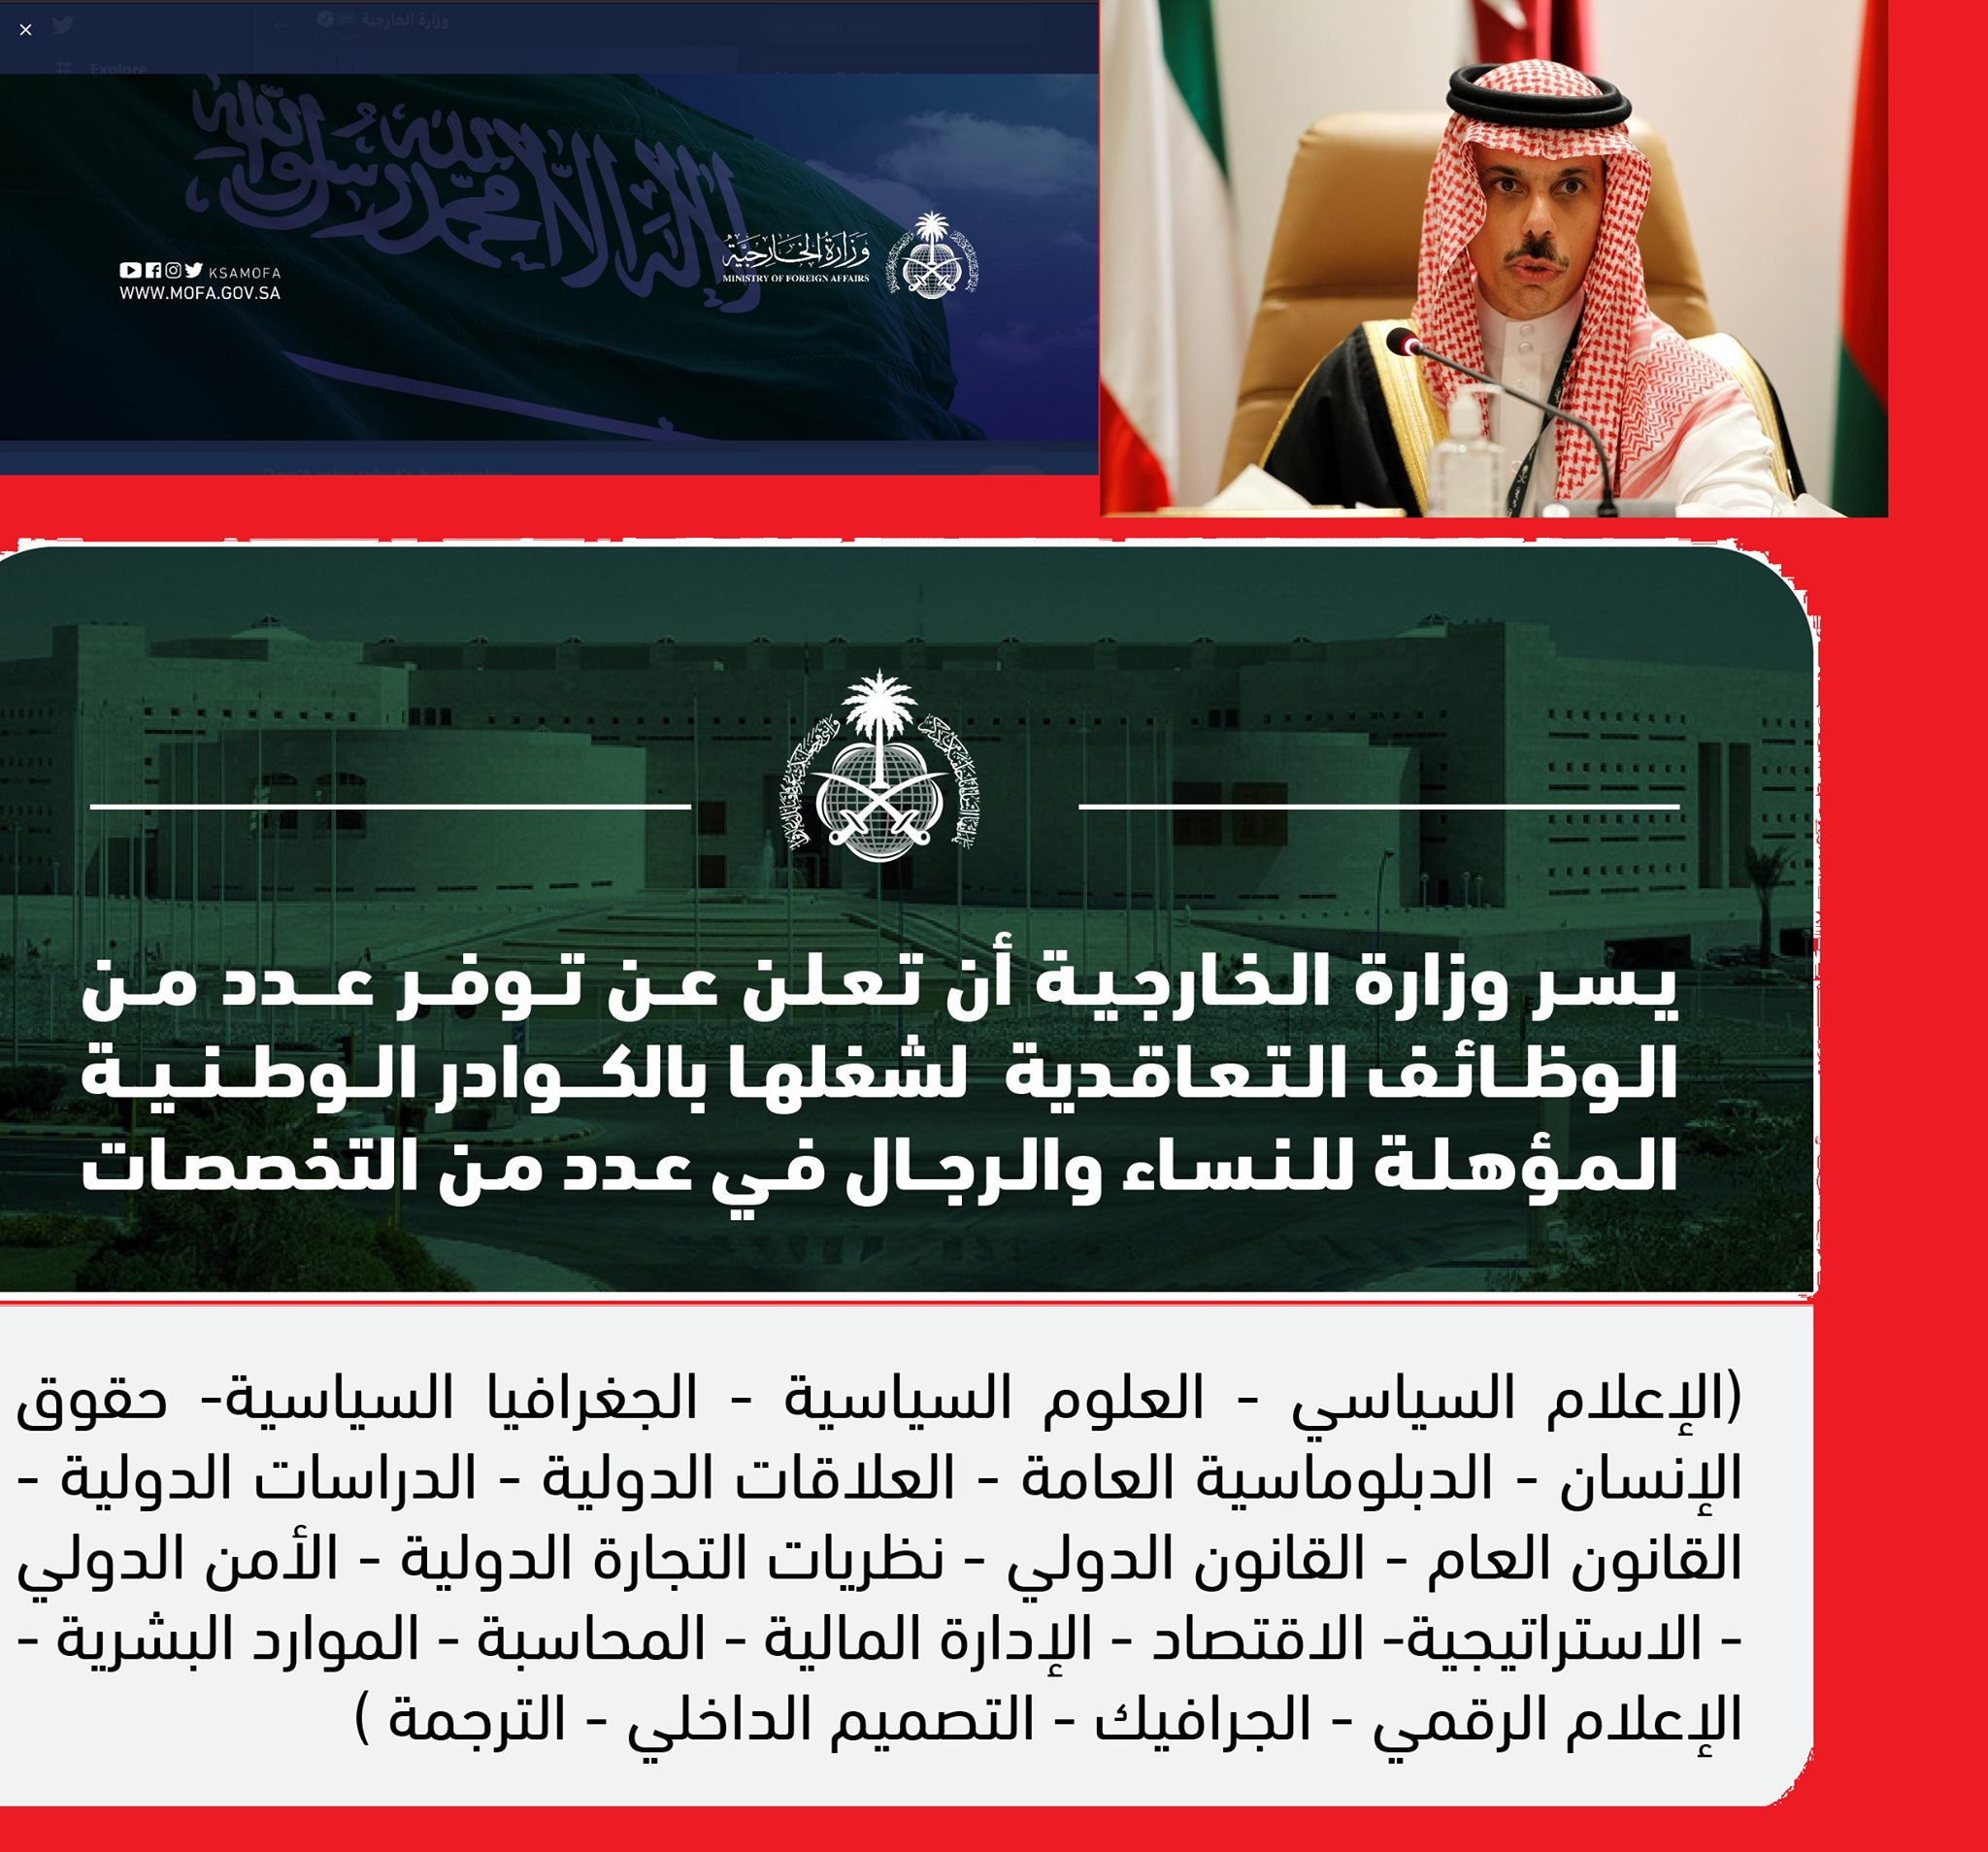 Link to submit and register contractual jobs for the Saudi Ministry of Foreign Affairs, men and women, specialties and admission requirements